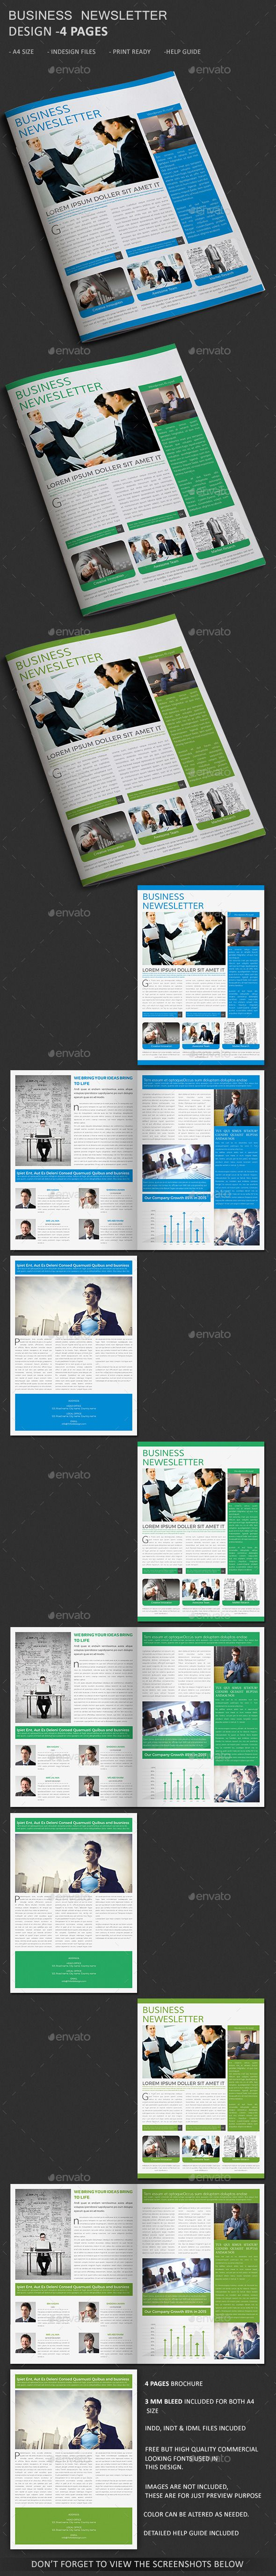 Business Newsletter Template Pages Newsletter Templates - 4 page newsletter template